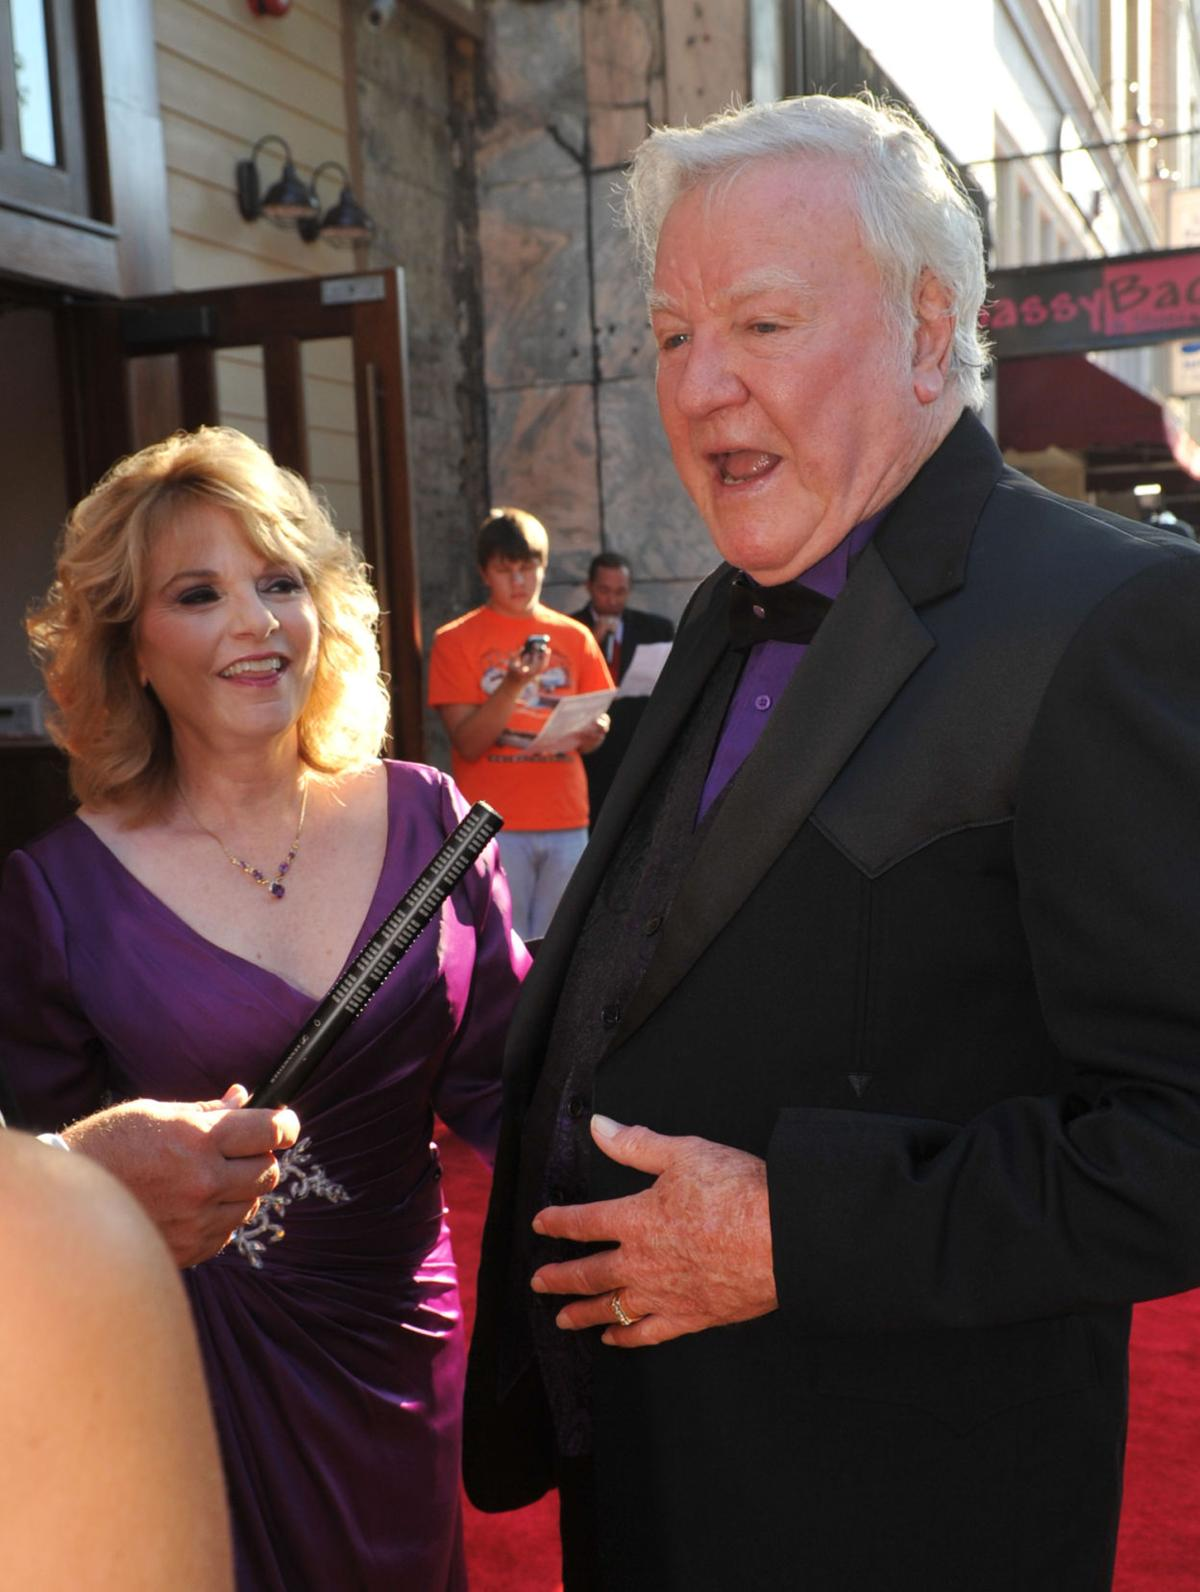 88 Best Latina Plus Models Images On Pinterest: The Final Curtain: Actor James Best Dead At 88